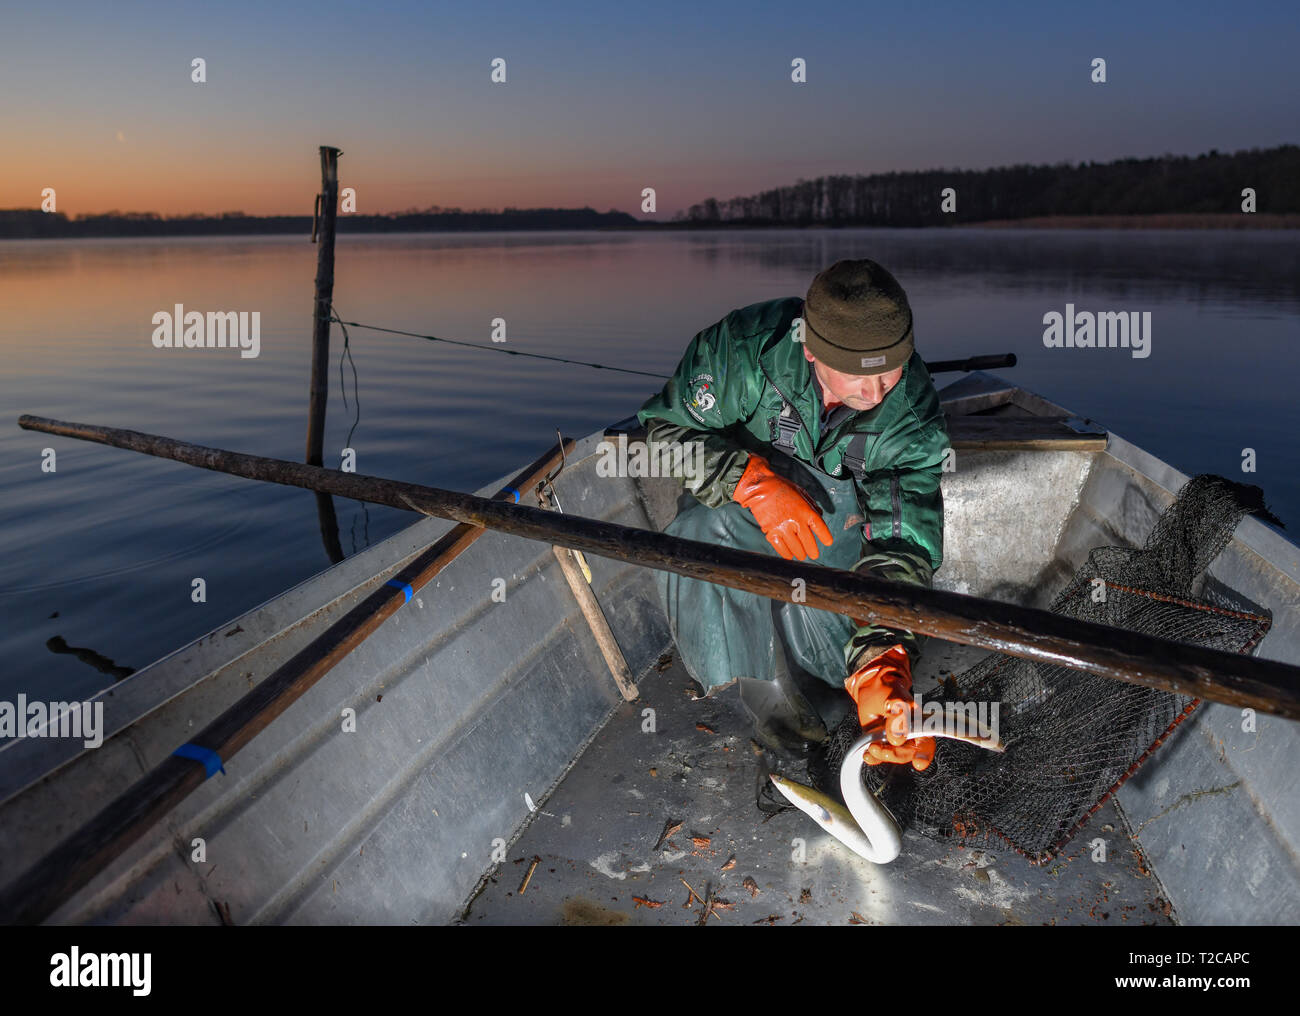 Pike Perches Photos & Pike Perches Images - Alamy